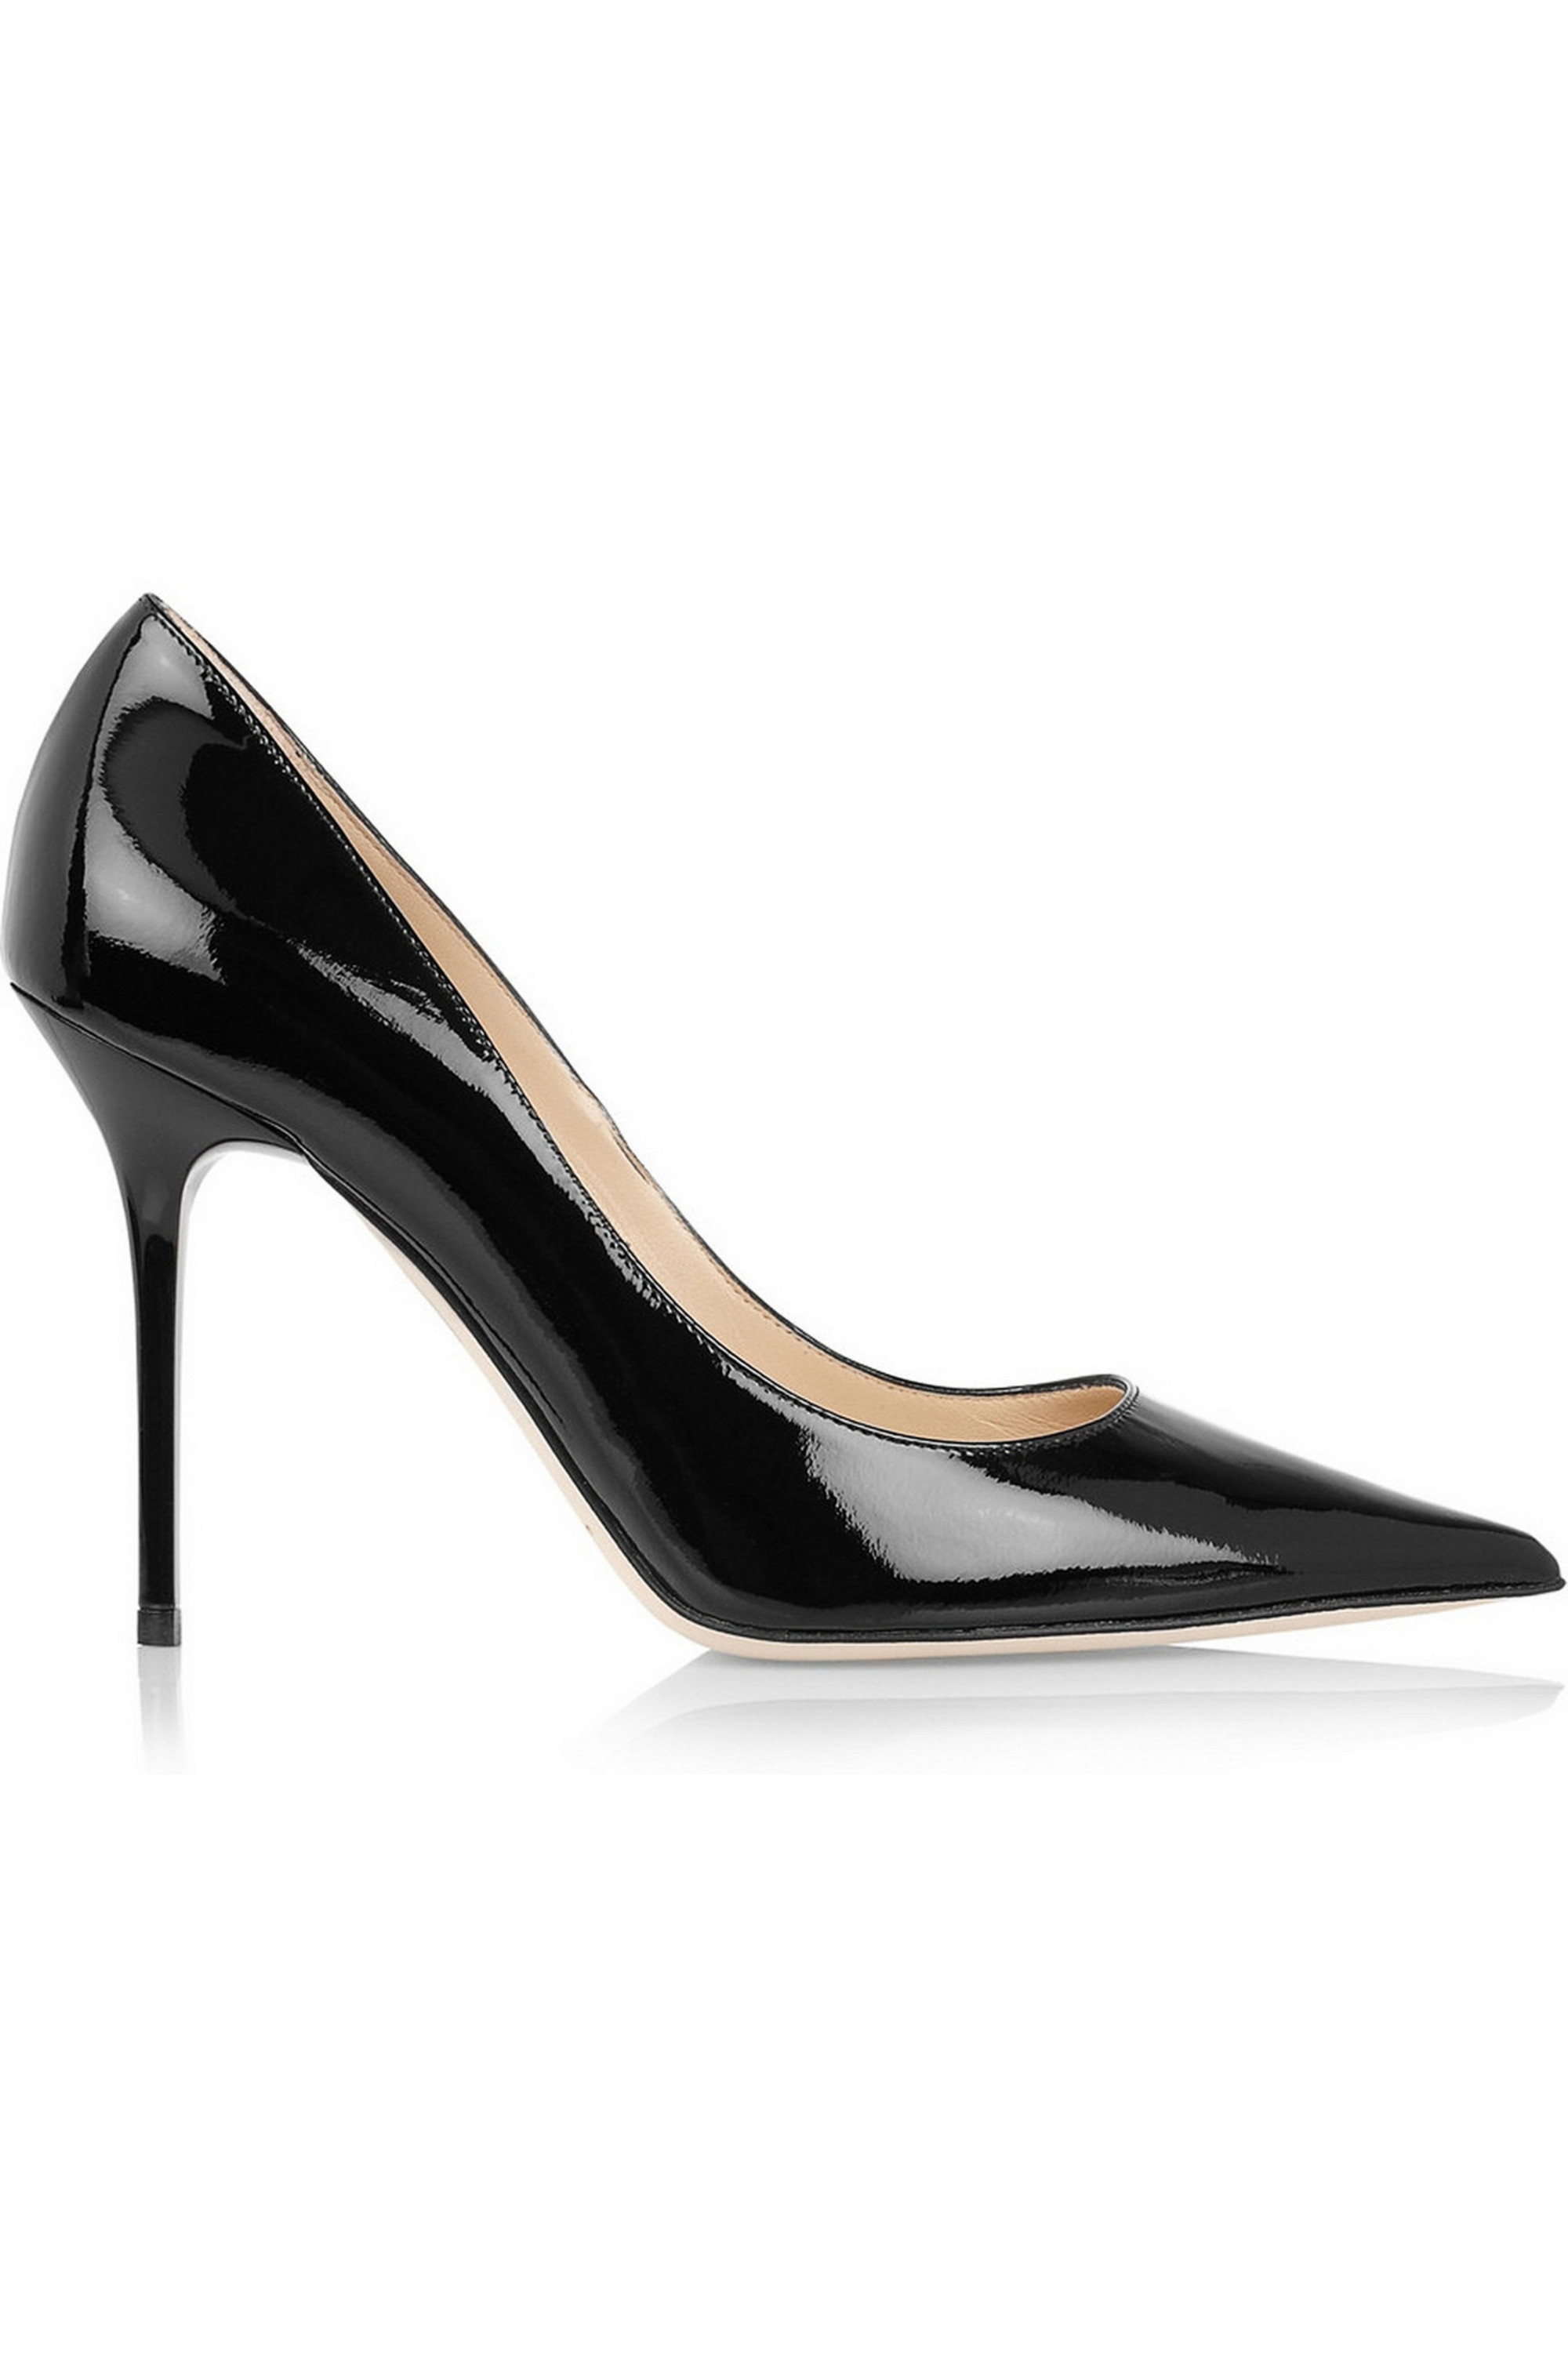 Abel patent-leather pumps by Jimmy Choo, available on net-a-porter.com for $297.5 Amal Clooney Shoes Exact Product